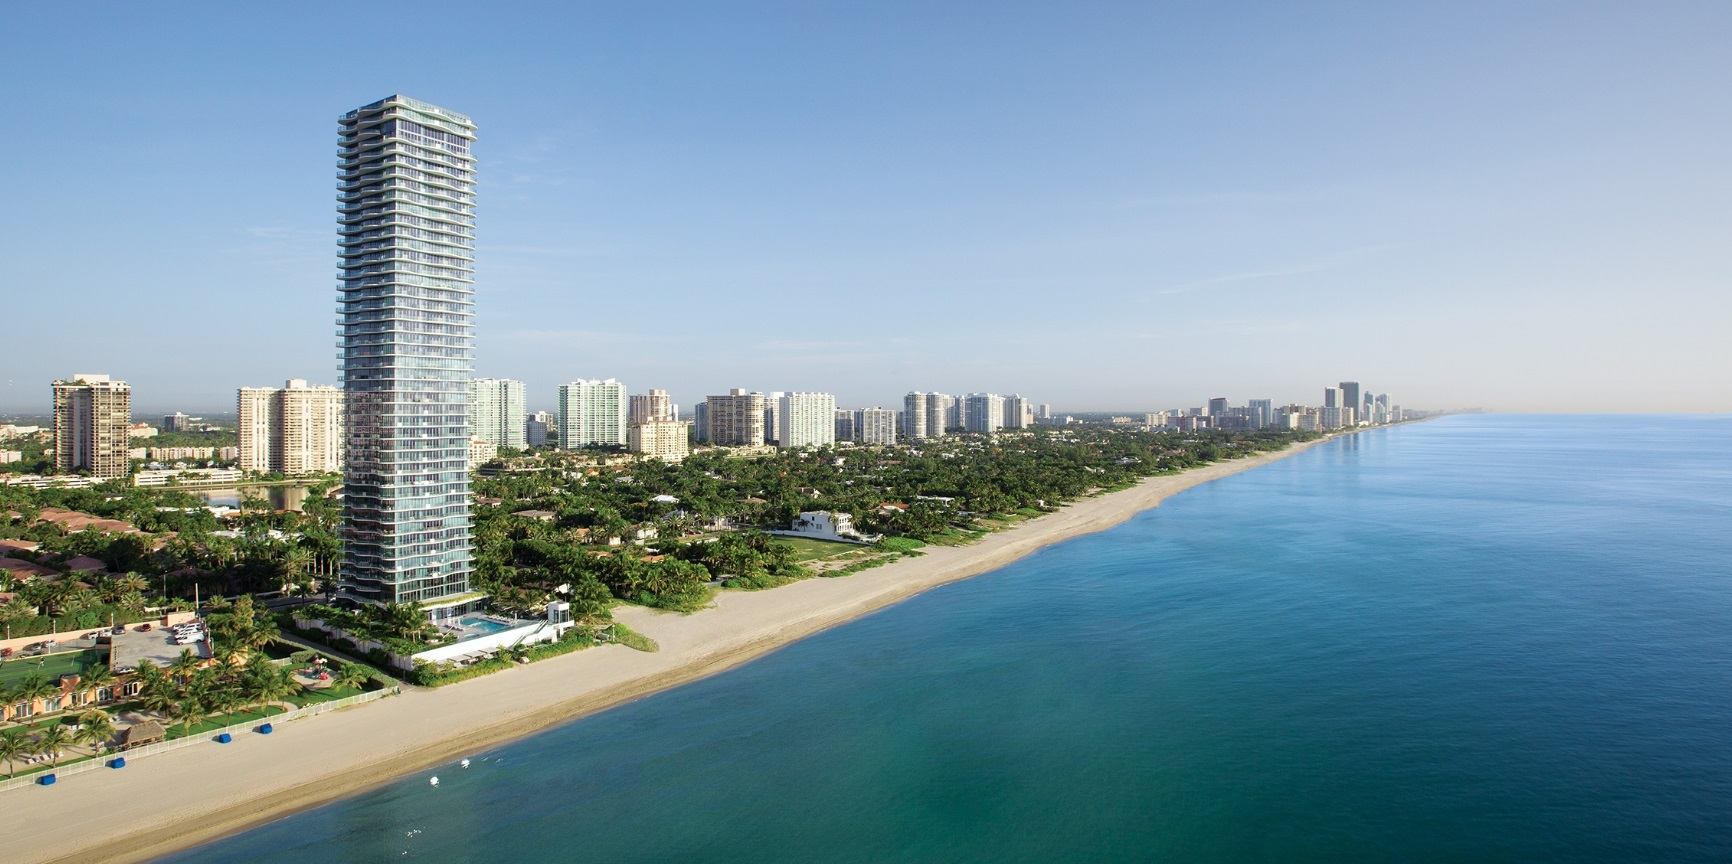 Regalia Sunny Isles Beach Luxury Condo on the beach